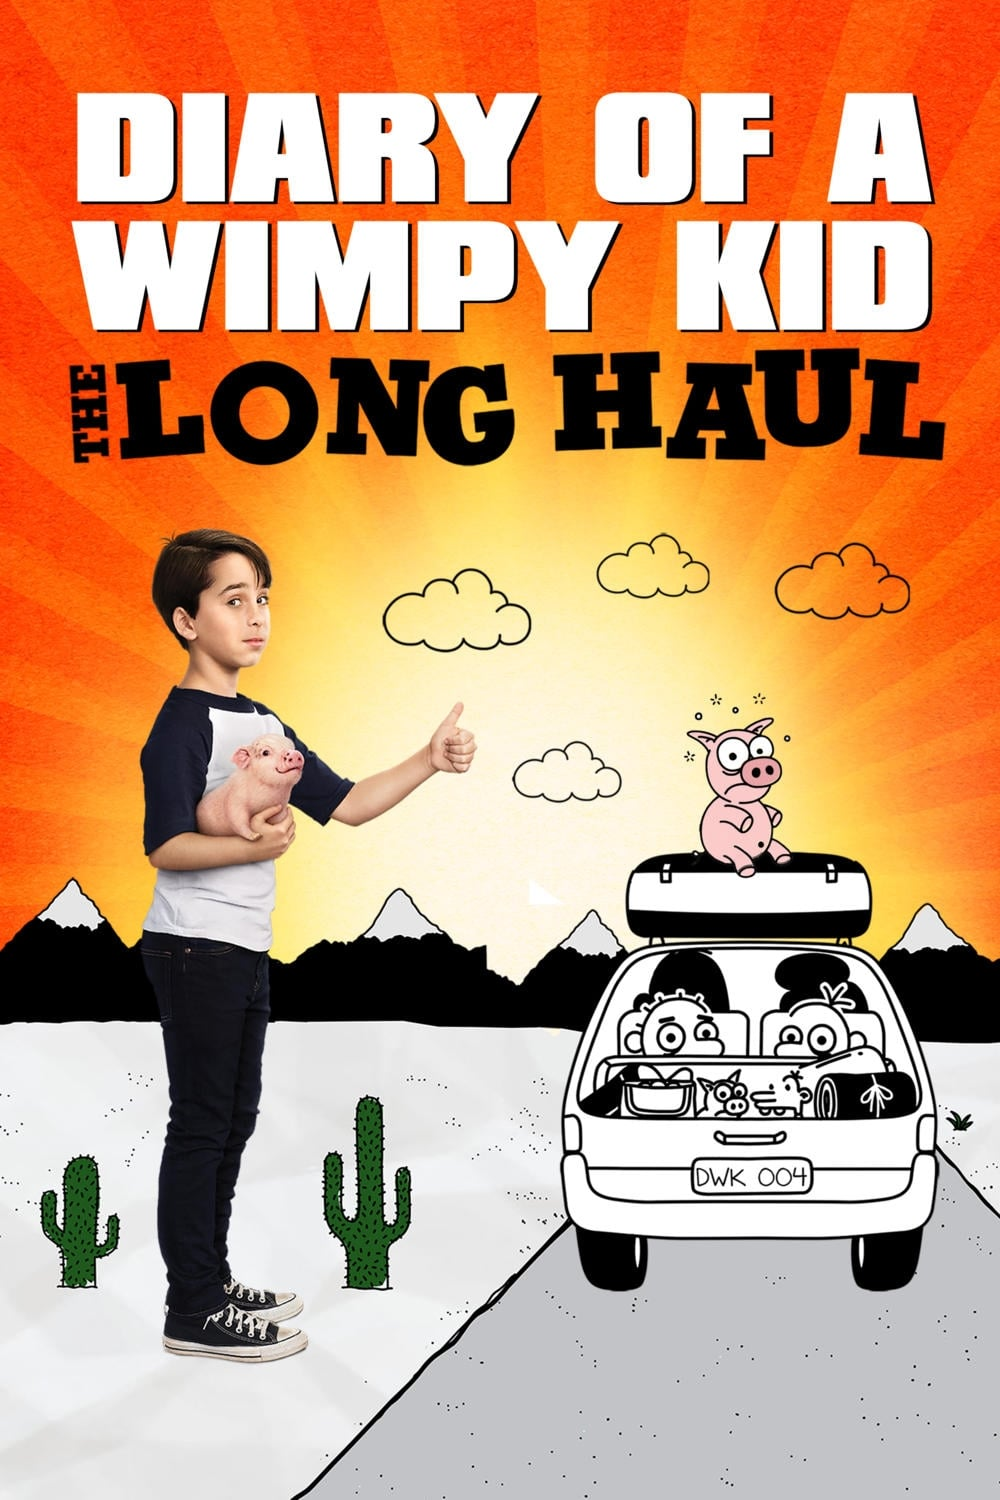 Diary Of A Fashion Mister Strictly Confidential: Diary Of A Wimpy Kid: The Long Haul (2017)